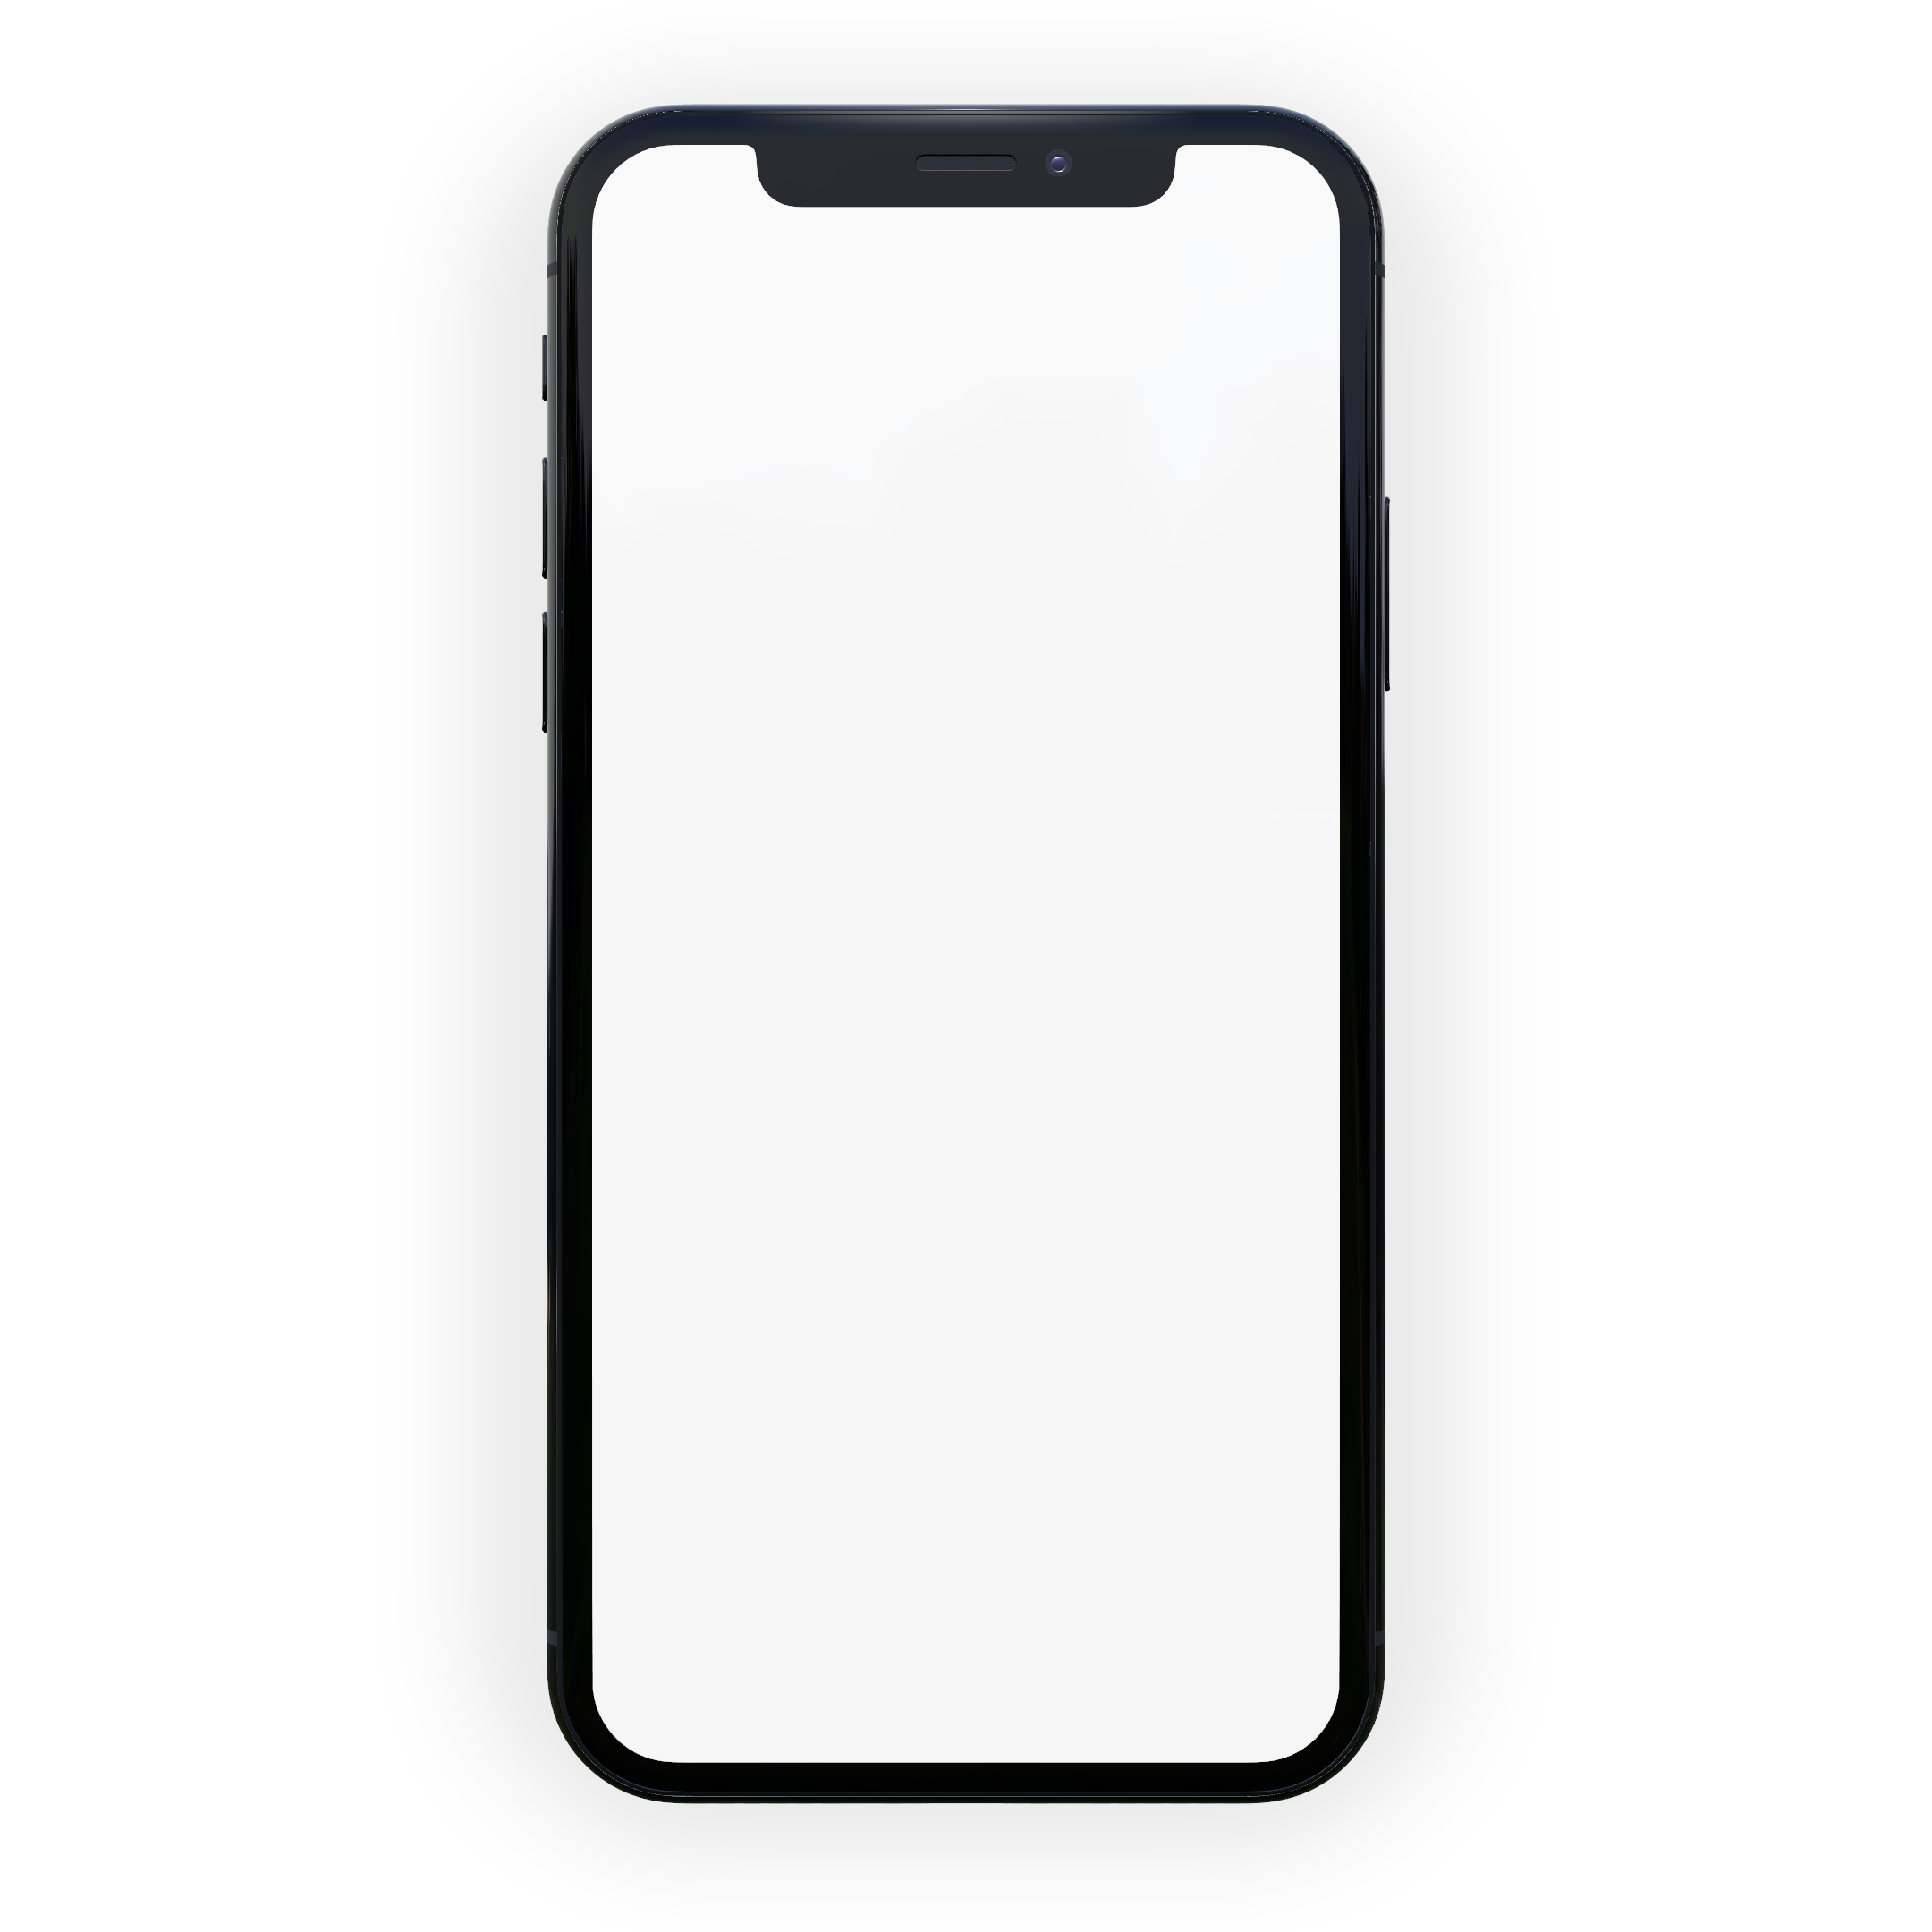 iphone x mockup seen from the front